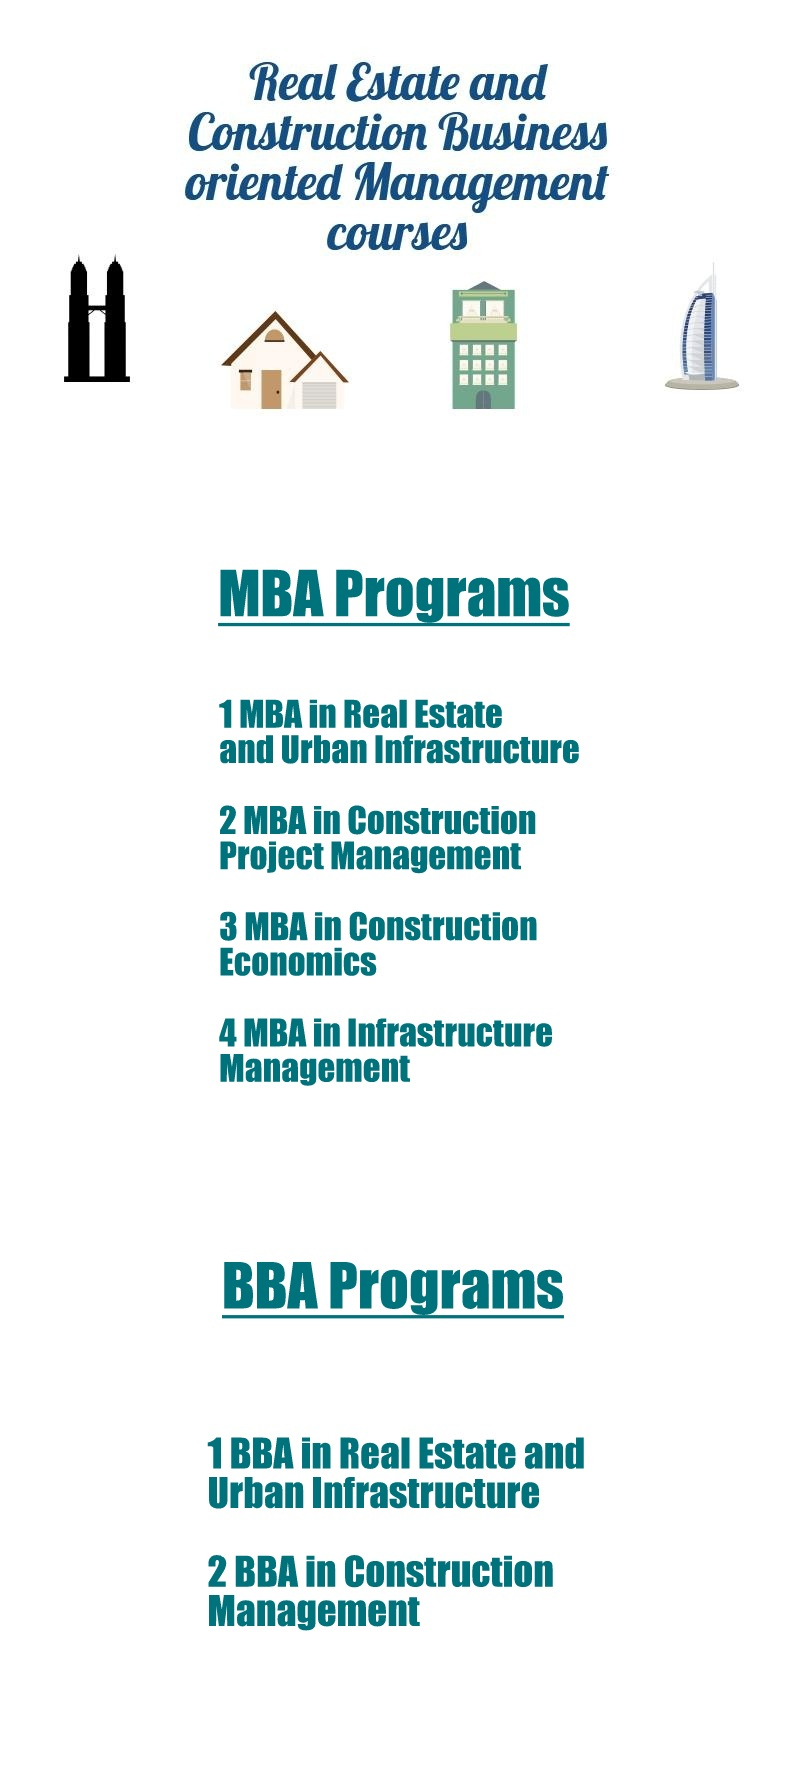 Real Estate, Construction & Infrastructure Management courses in